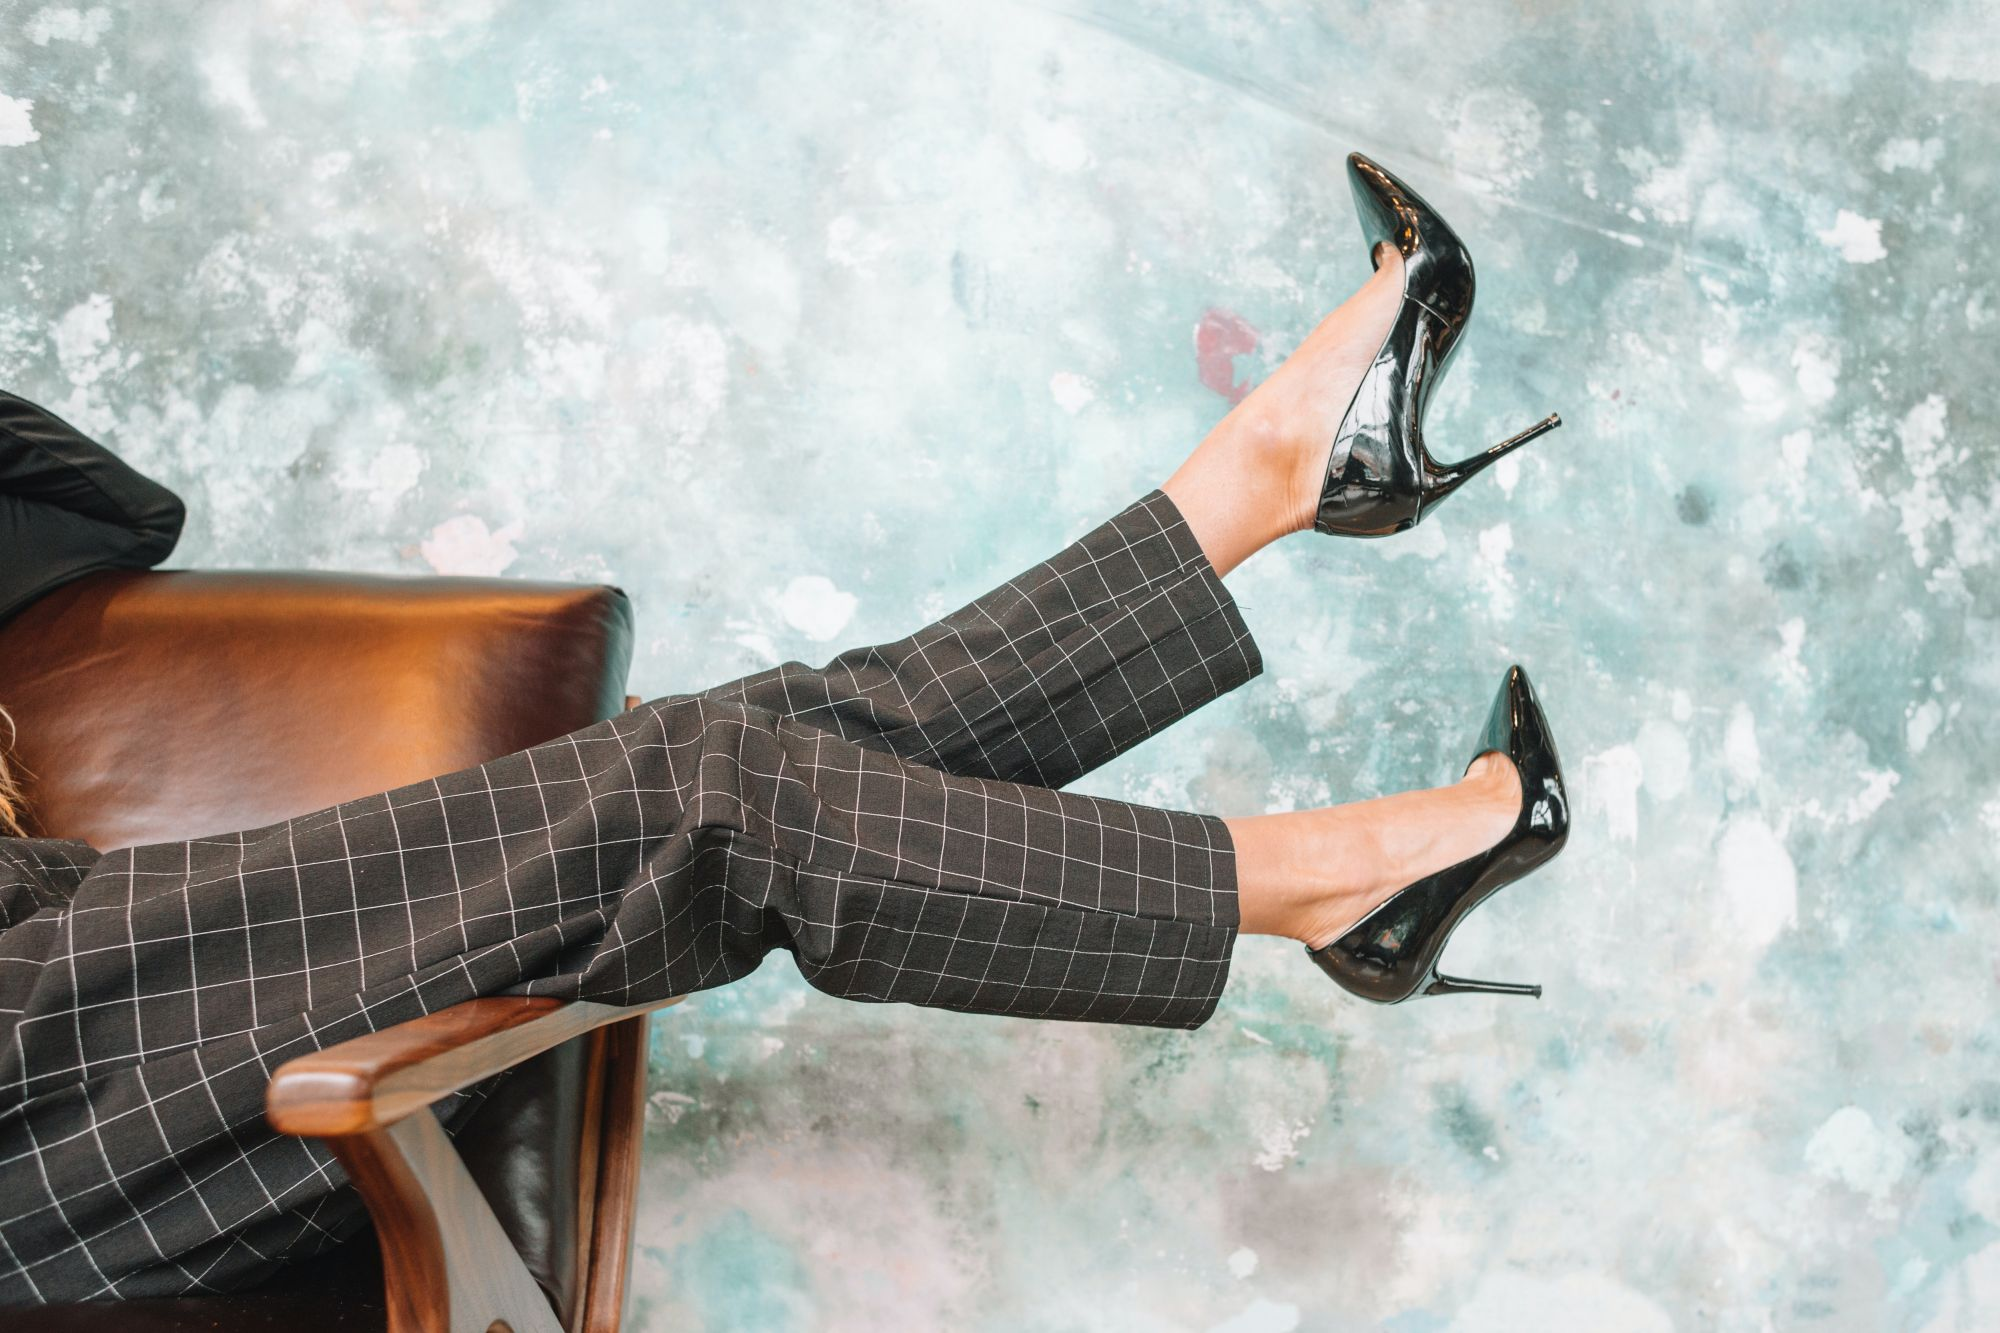 Love High Heels? Early Minimally-Invasive Keyhole Surgery May Be the Solution to Foot Problem